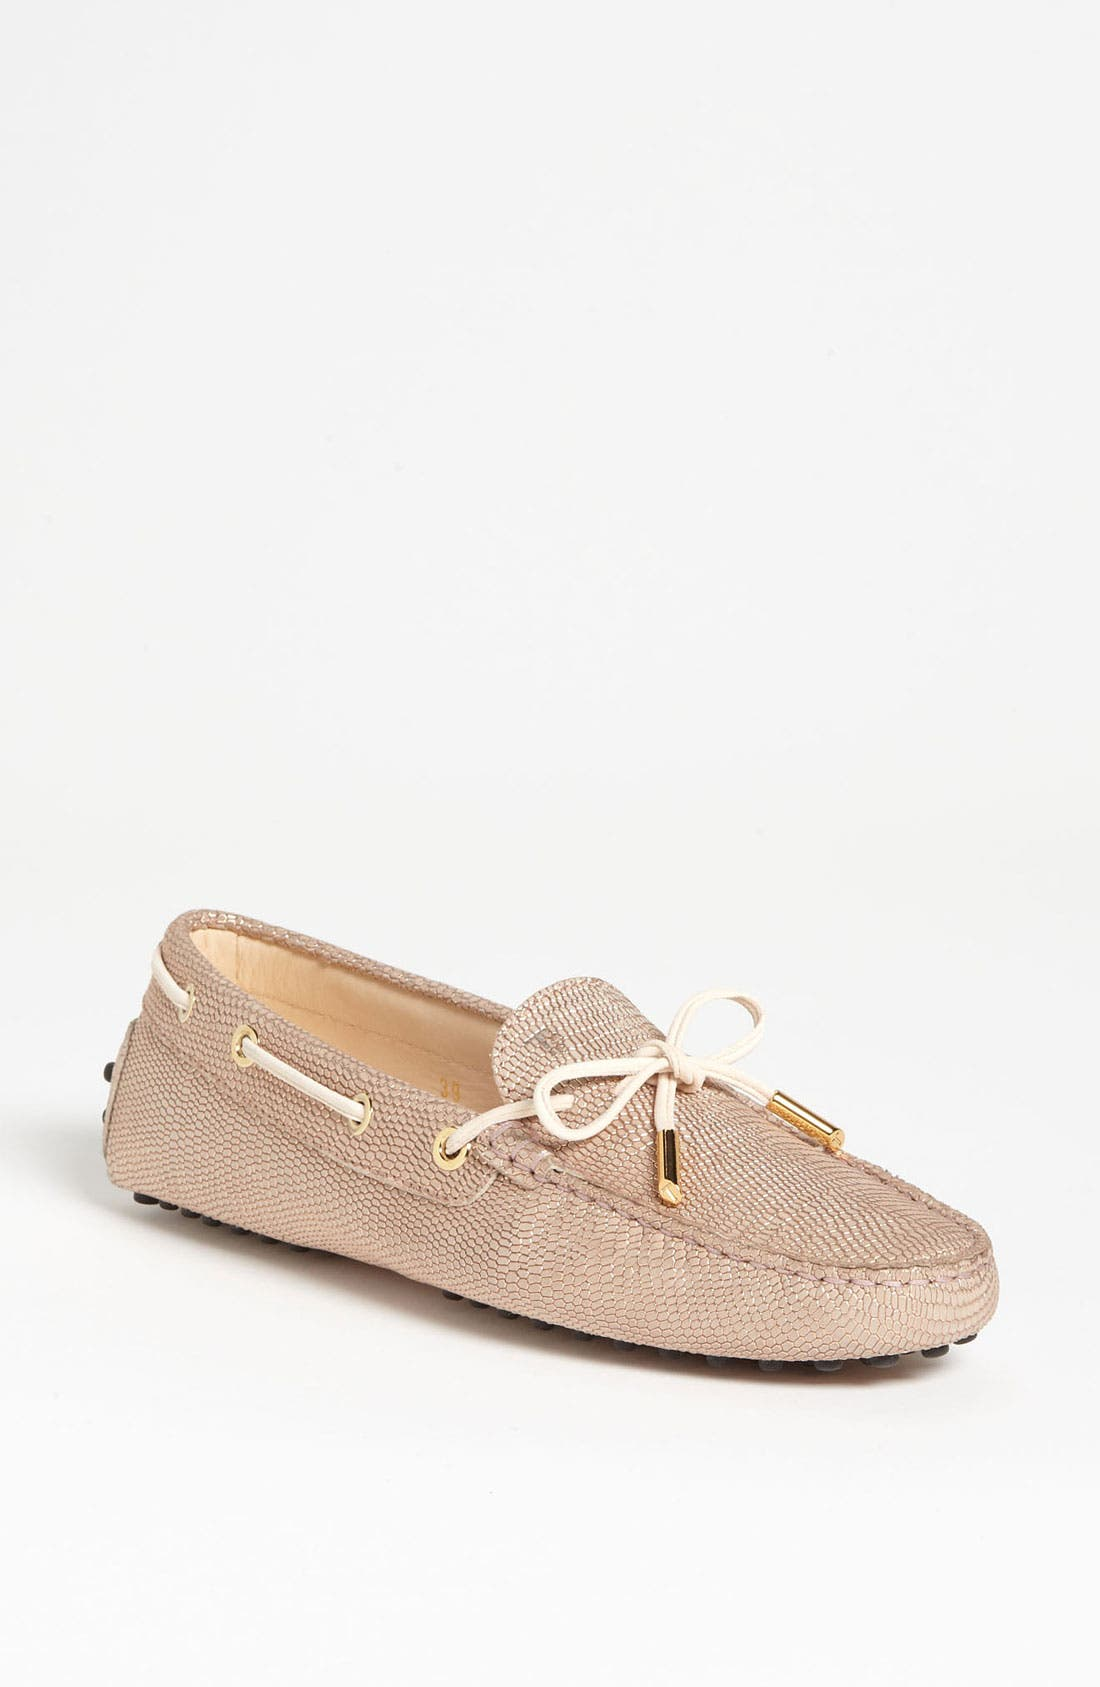 Alternate Image 1 Selected - Tod's 'New Heaven Laccetto' Moccasin